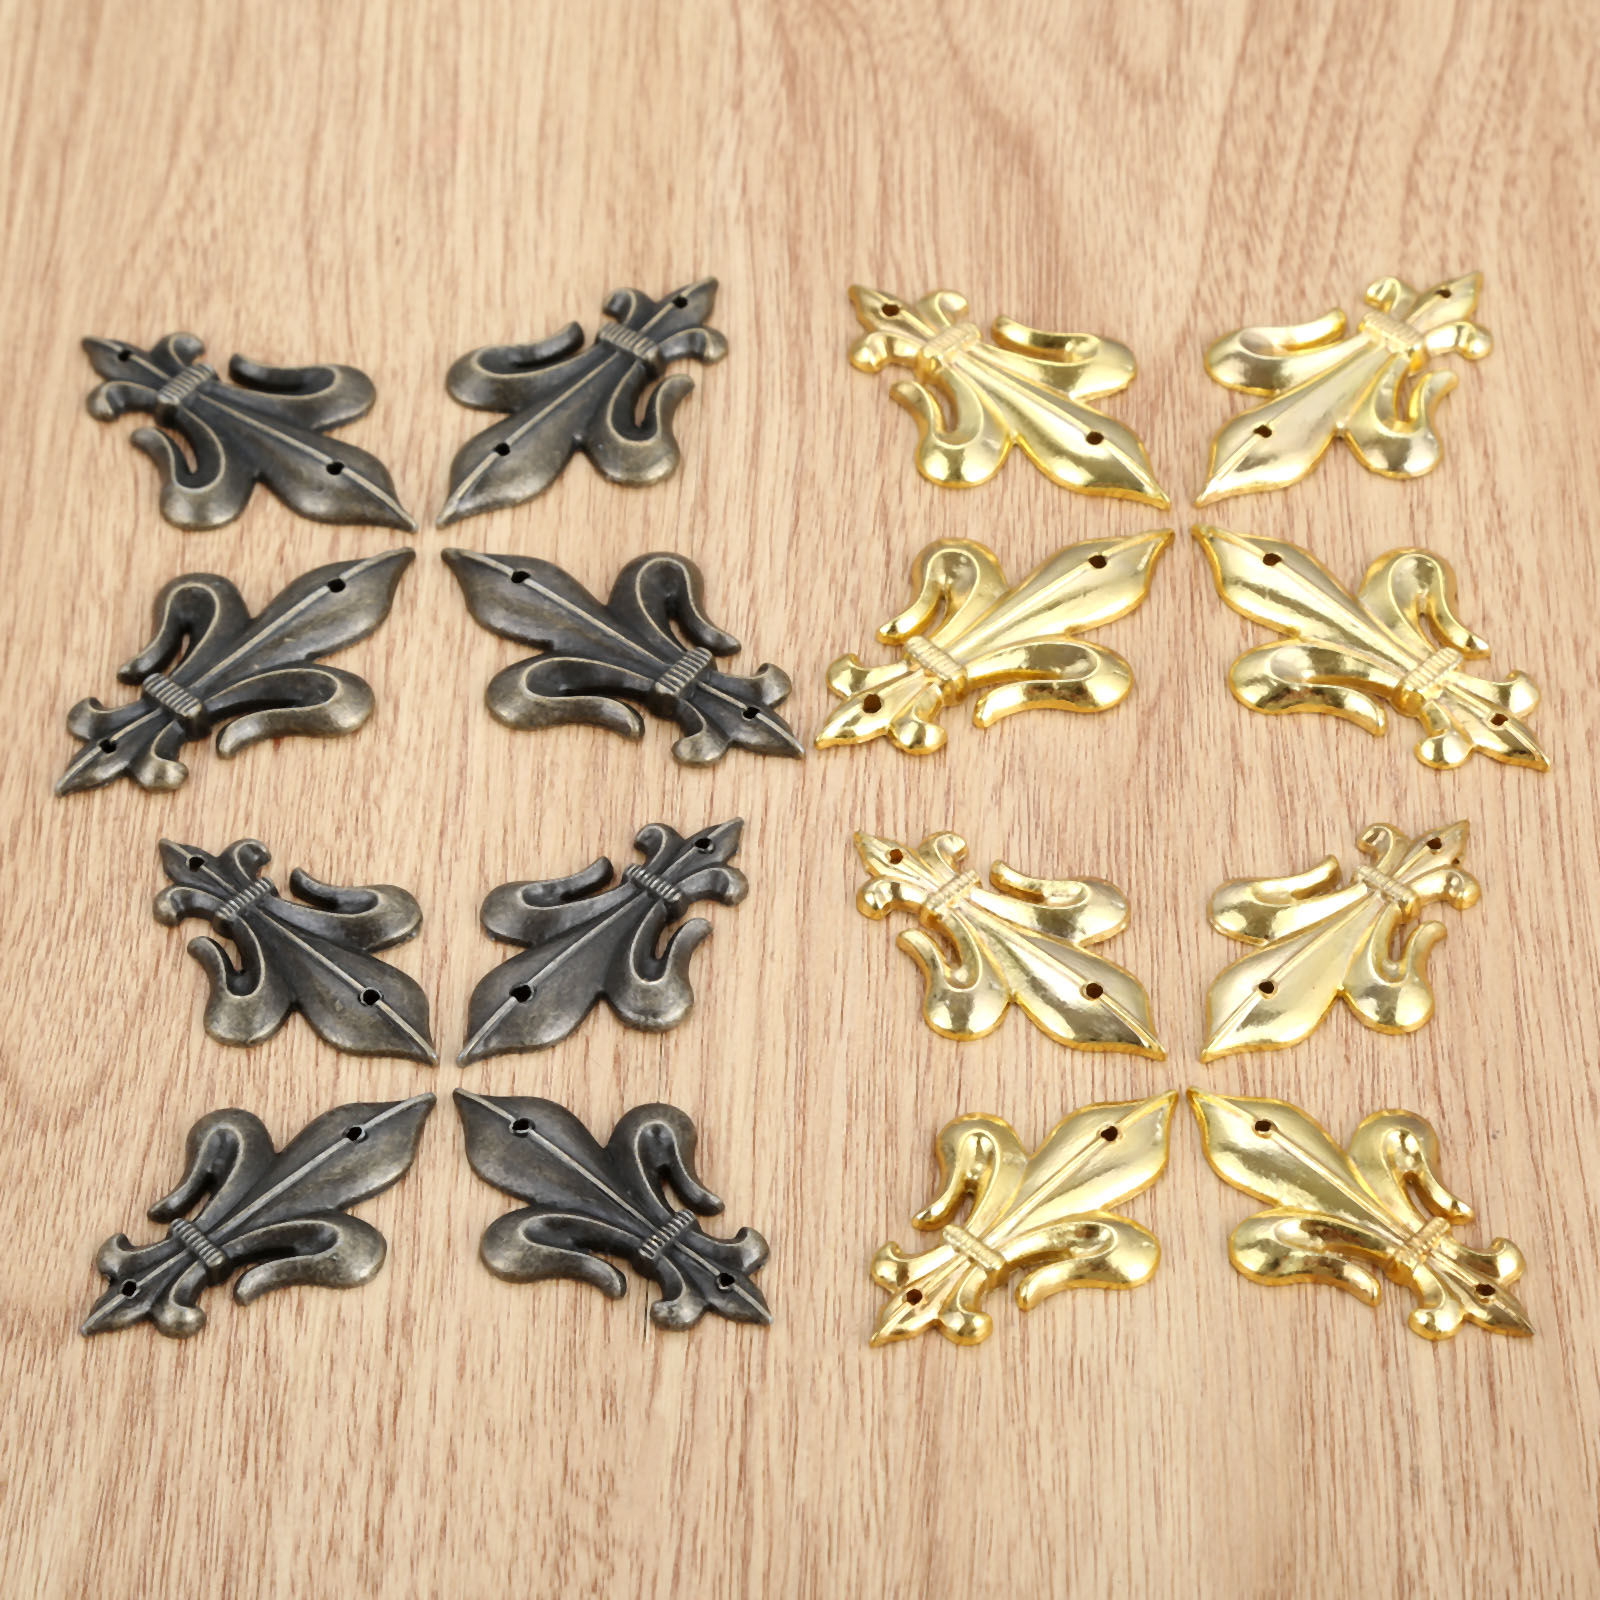 DRELD 4Pcs Antique Brass/Gold Furniture Decorative Corner Brackets Jewelry Box Wood Case Feet Leg Corner Protector With Nails